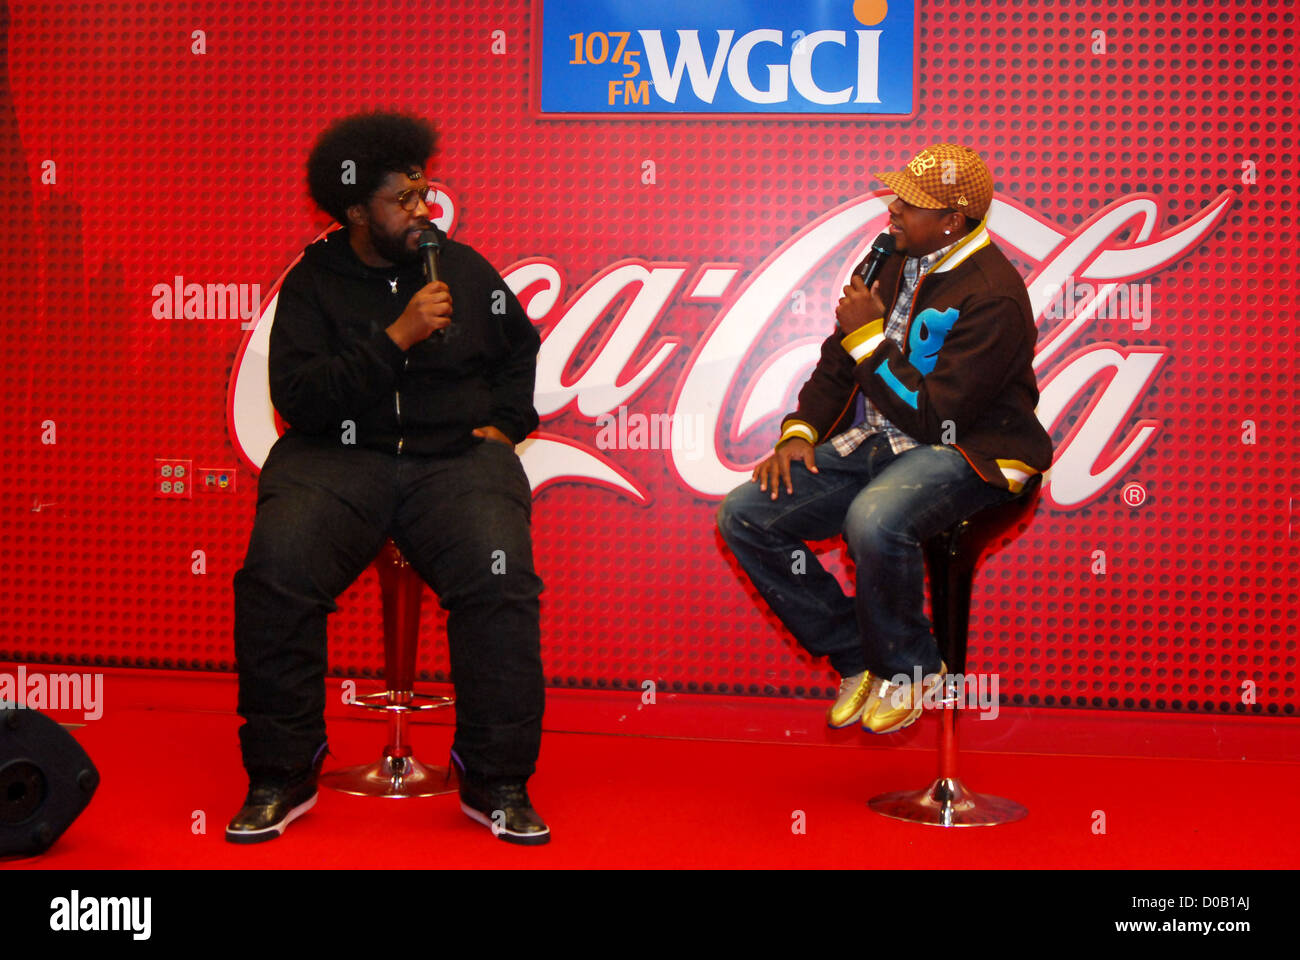 the roots drummer questlove uestlove stops by wgci coca cola stock photo the roots drummer questlove uestlove stops by wgci coca cola lounge for an interview on air personality and comedian